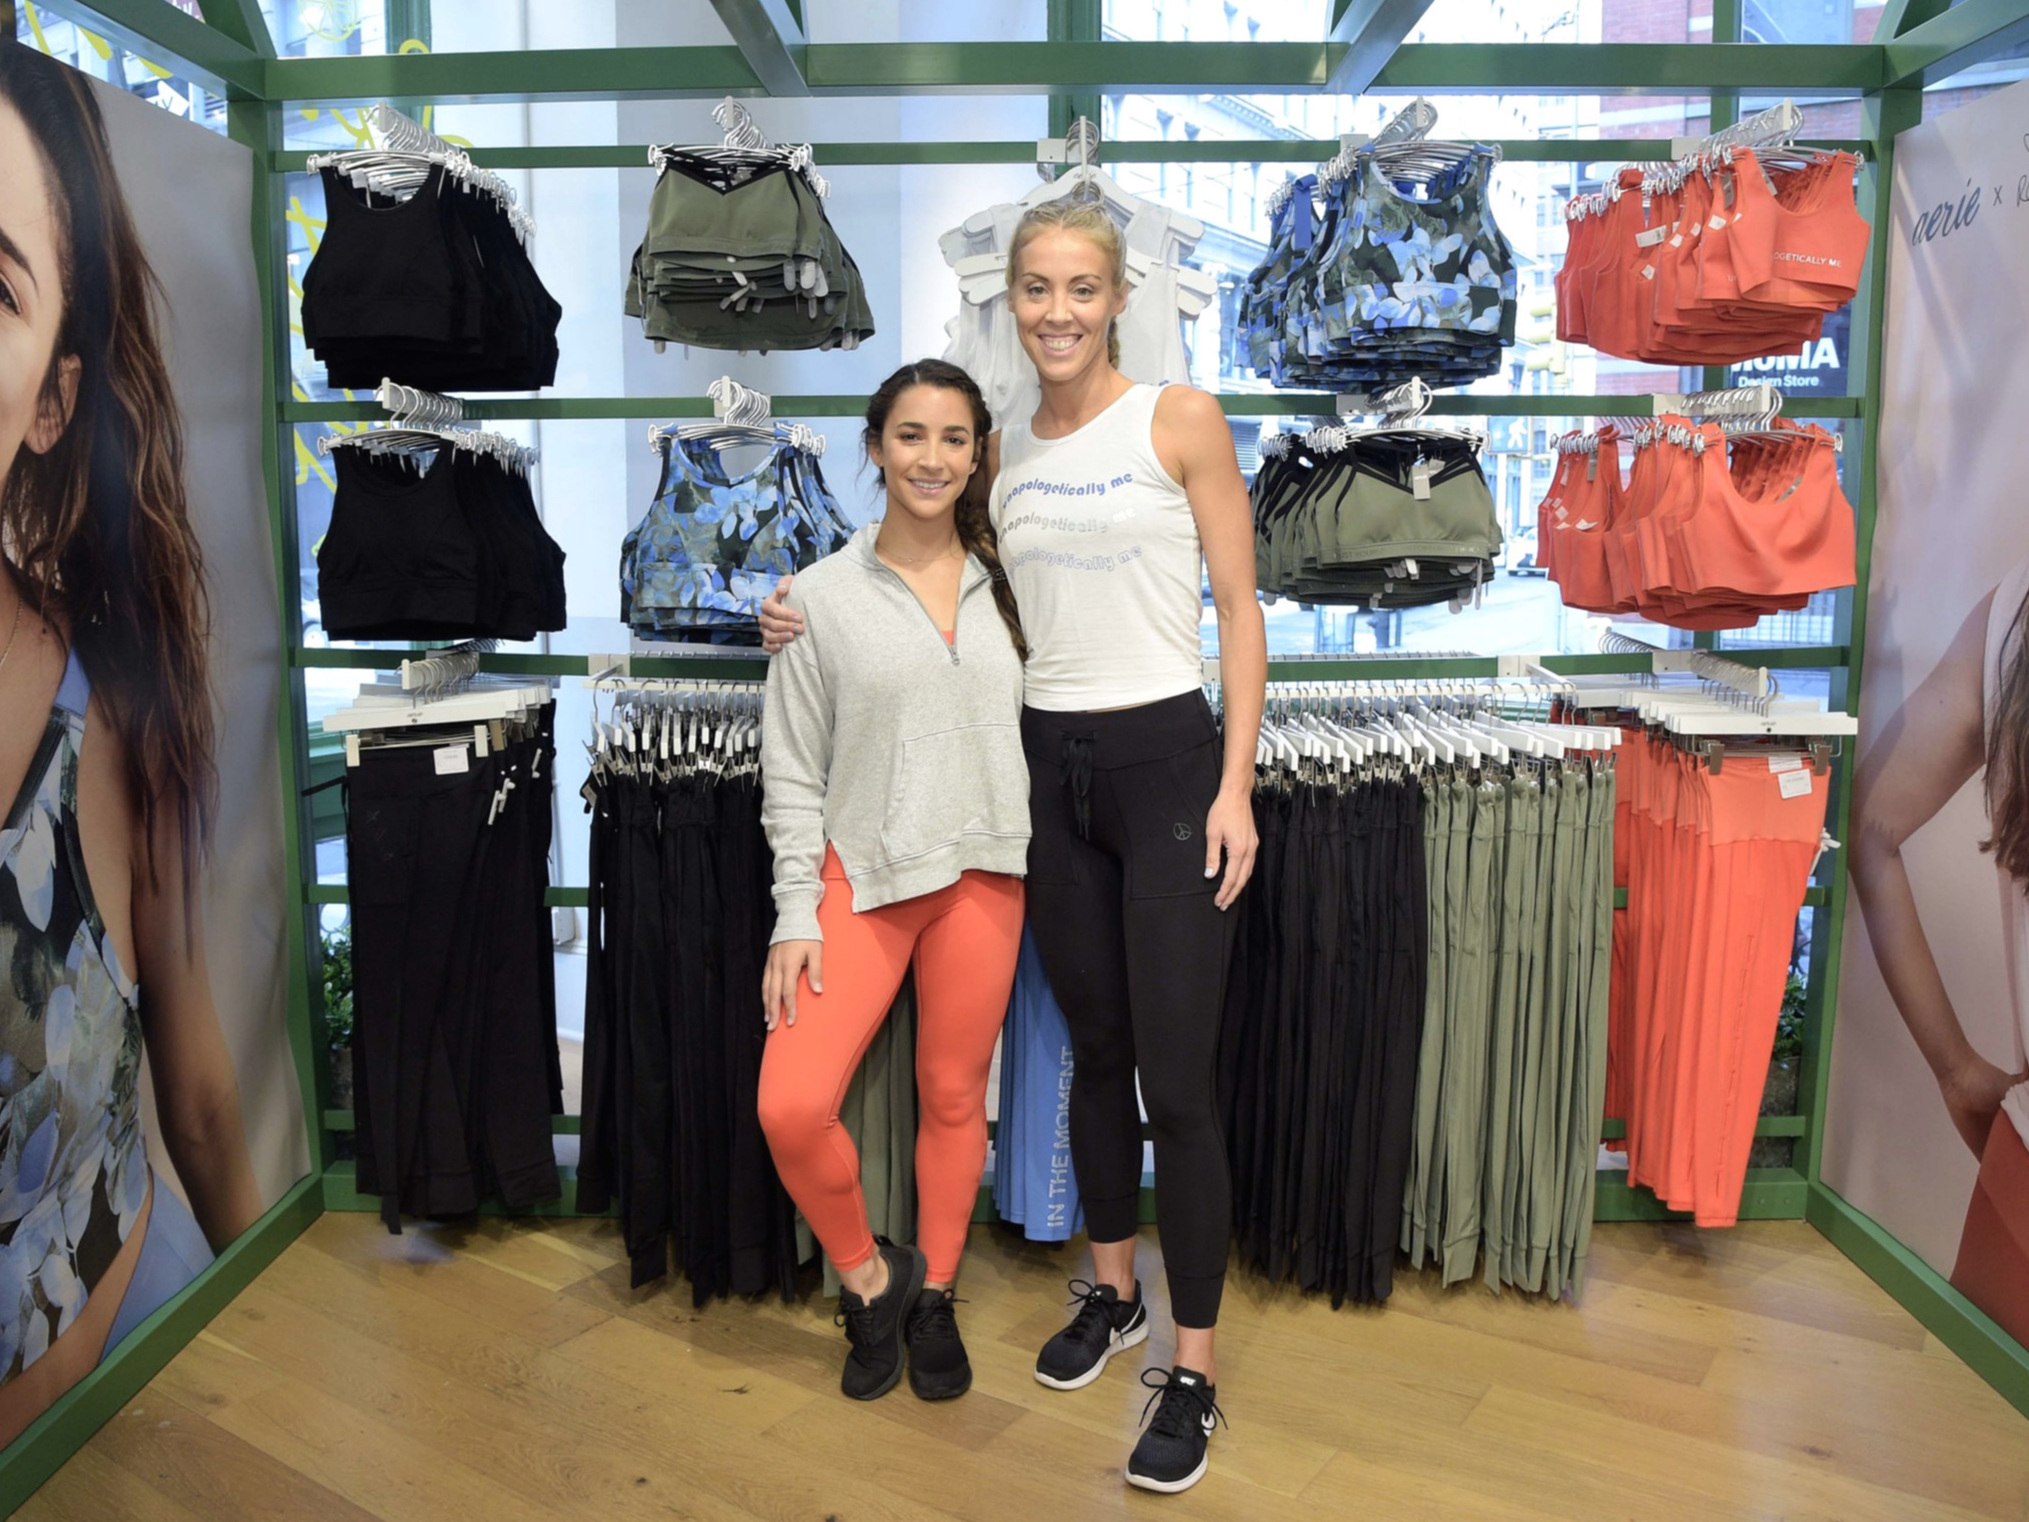 Joined forces with Aly Raisman to launch her new Aerie x line - proceeds benefiting Darkness to Light, a non-profit that works to prevent child sexual abuse.